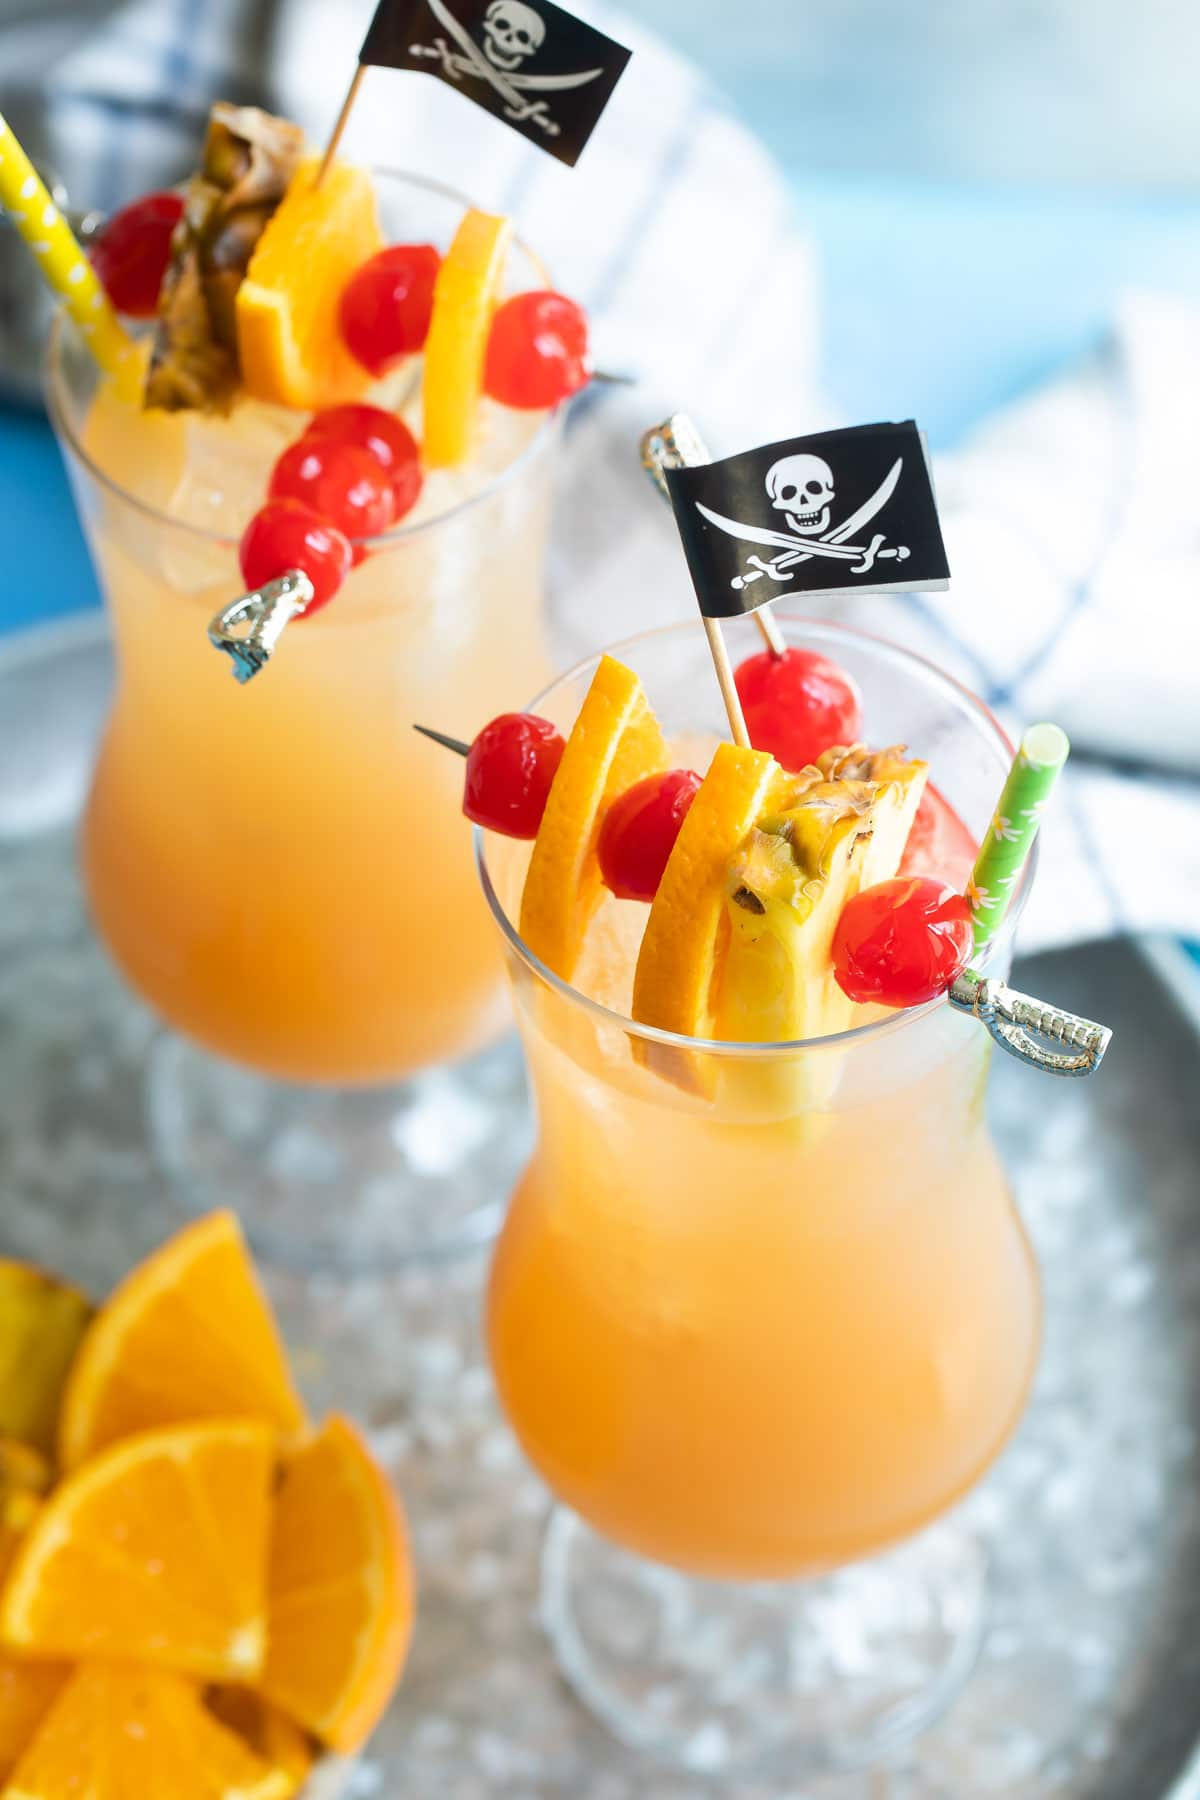 Glasses of pirate punch on a metal tray.